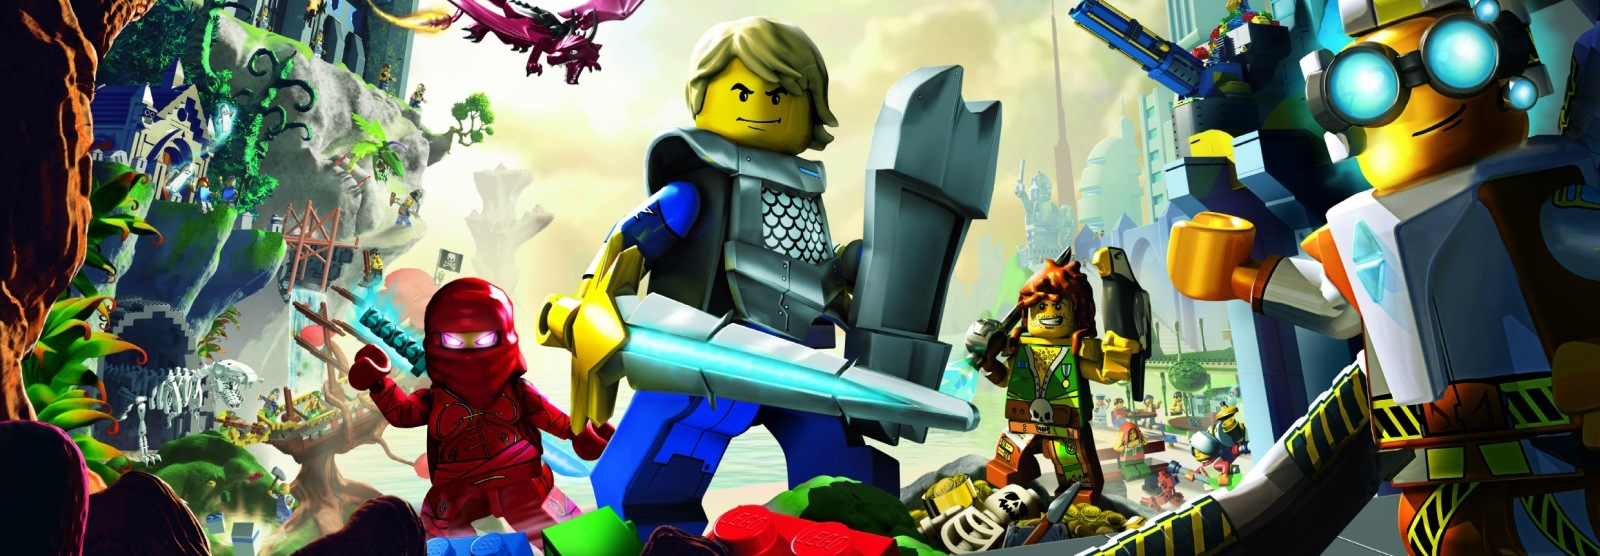 how to play lego universe 2018